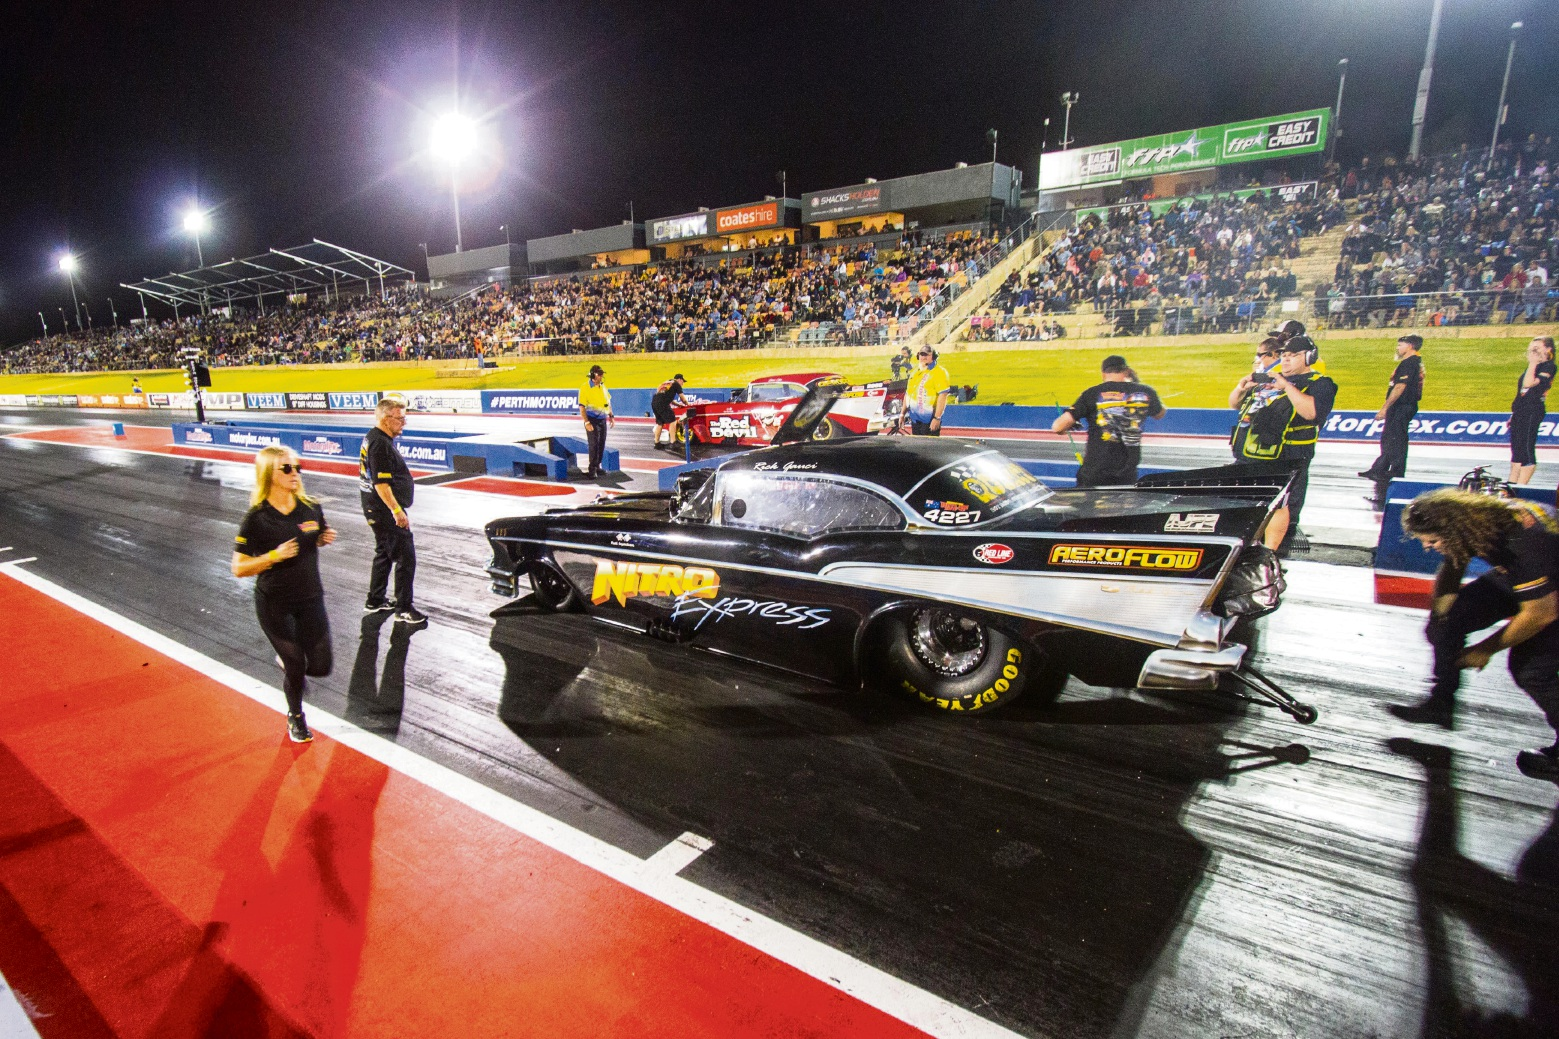 Rick Gauci in the Nitro Express Chev at the Perth Motorplex last week.